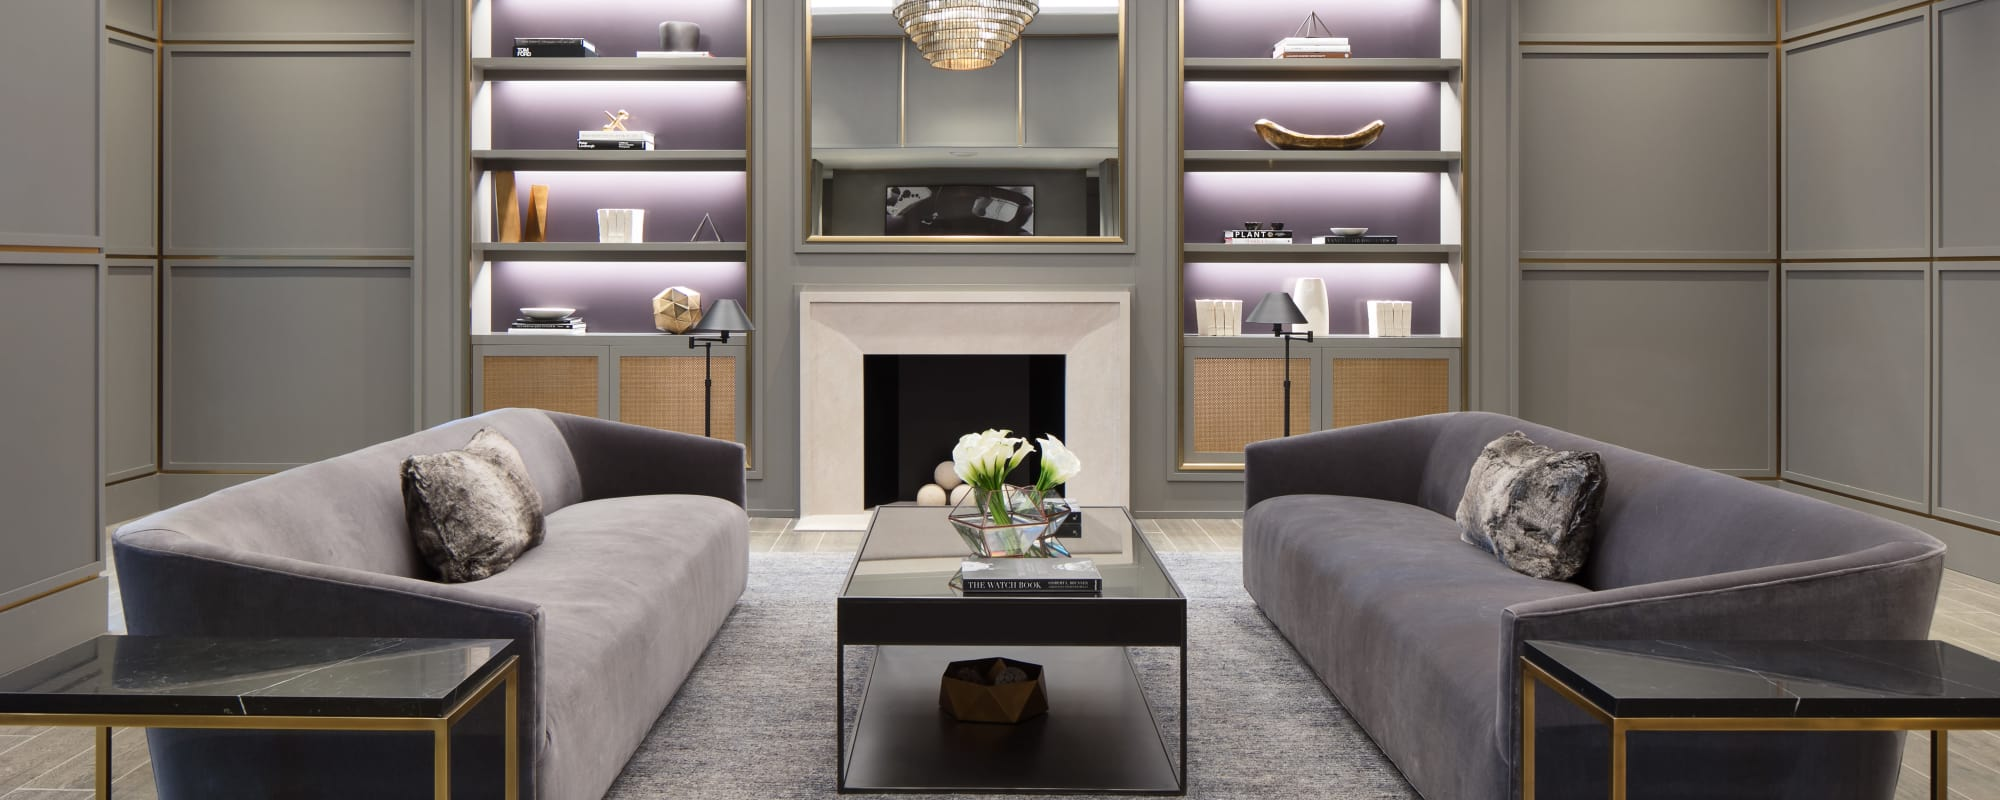 Front lobby seating and fireplace at Trump Bay Street in Jersey City, New Jersey